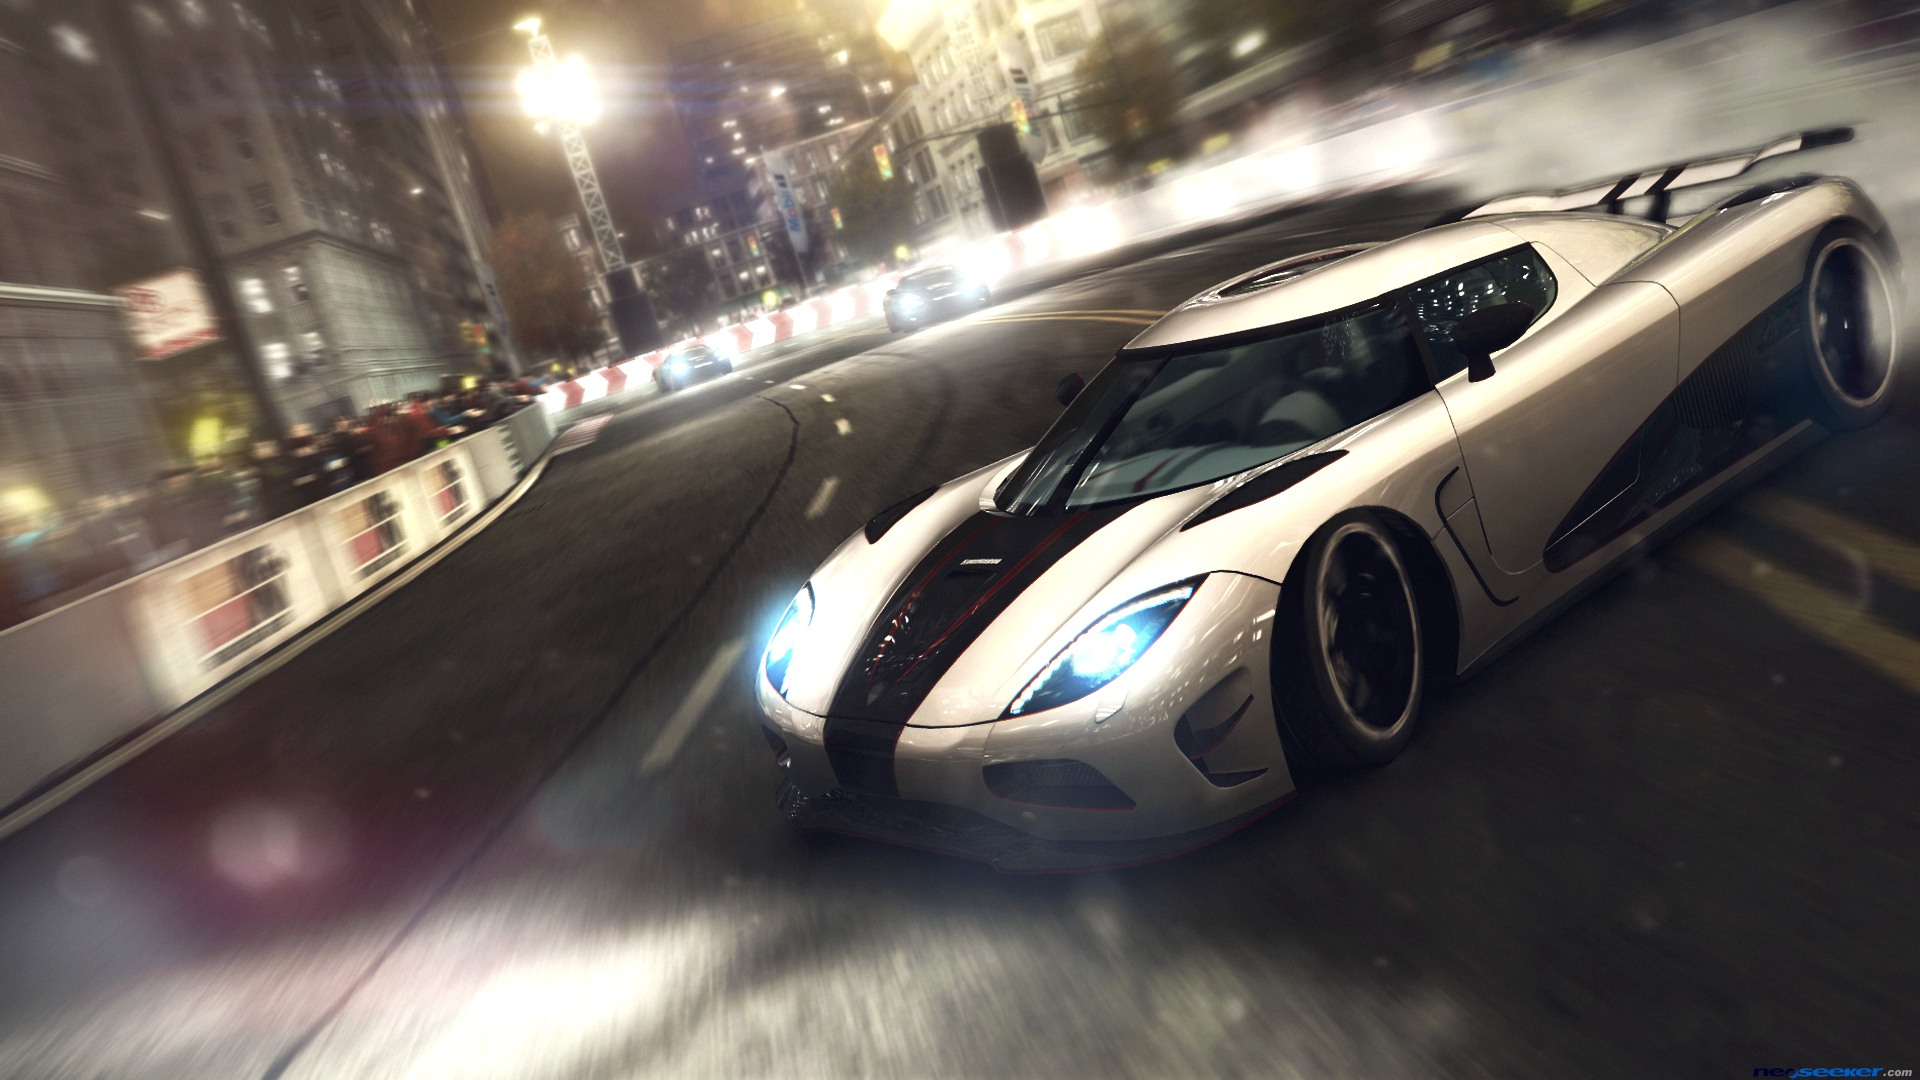 koenigsegg agera r grid 2 with Big on Rpg Maker Mv Dlc Import additionally Razendsnel Gamen Met De Koenigsegg Razer Blade Laptop as well Koenigsegg Agera R Wallpaper 1080p in addition Vehicle likewise Koenigsegg Agera R Wallpaper 1080p.